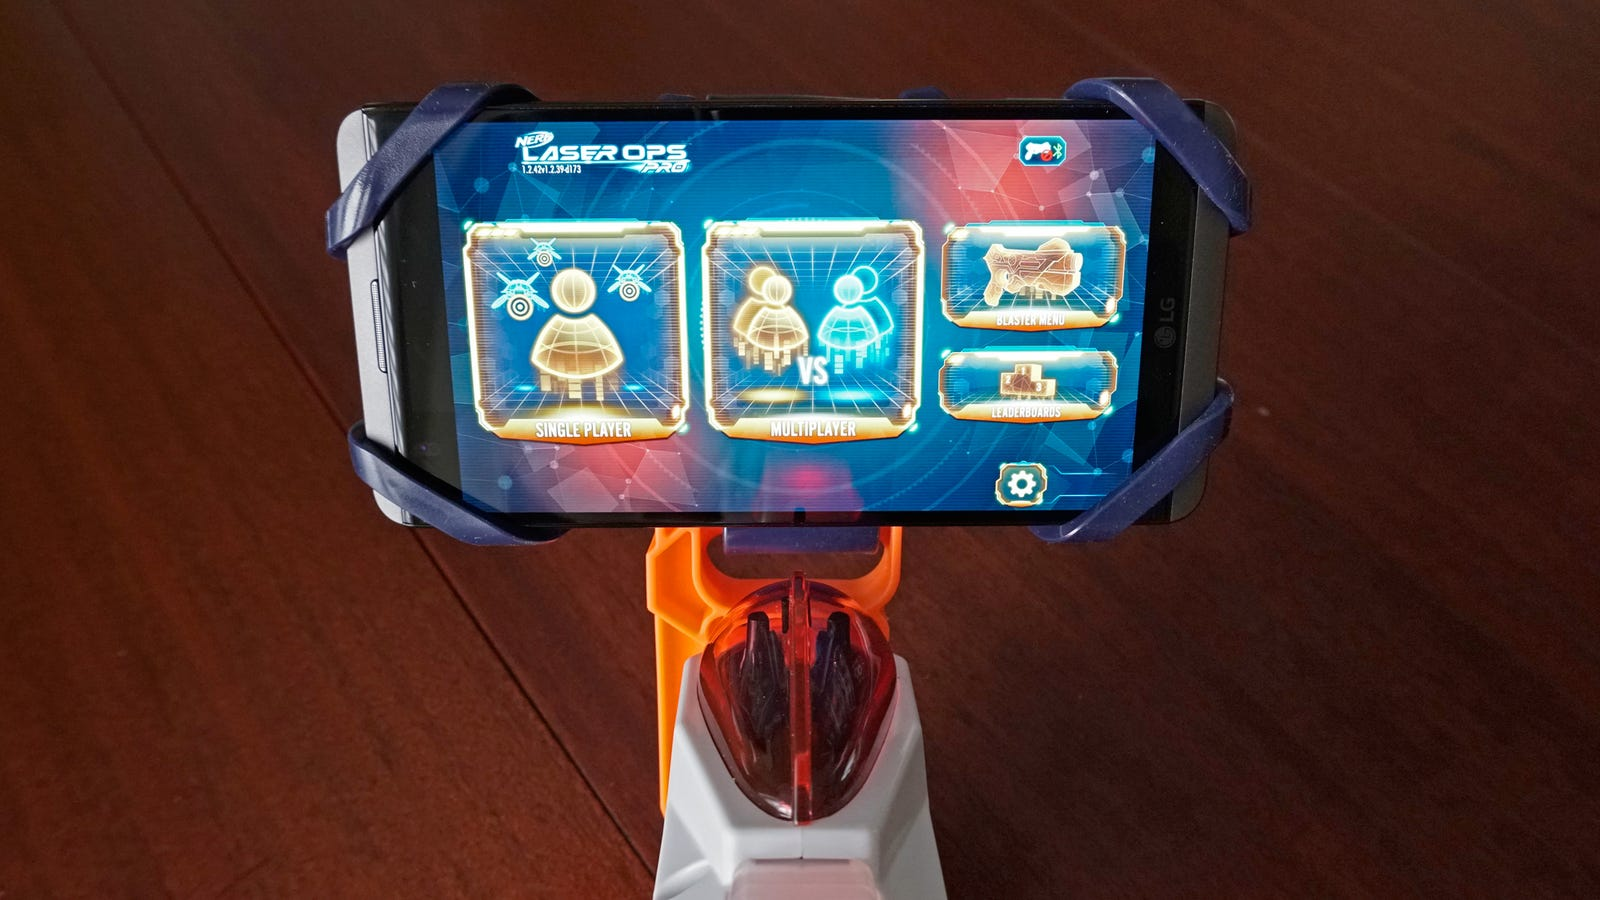 You can connect a smartphone running the Laser Ops Pro app to either blaster to enhance gameplay.